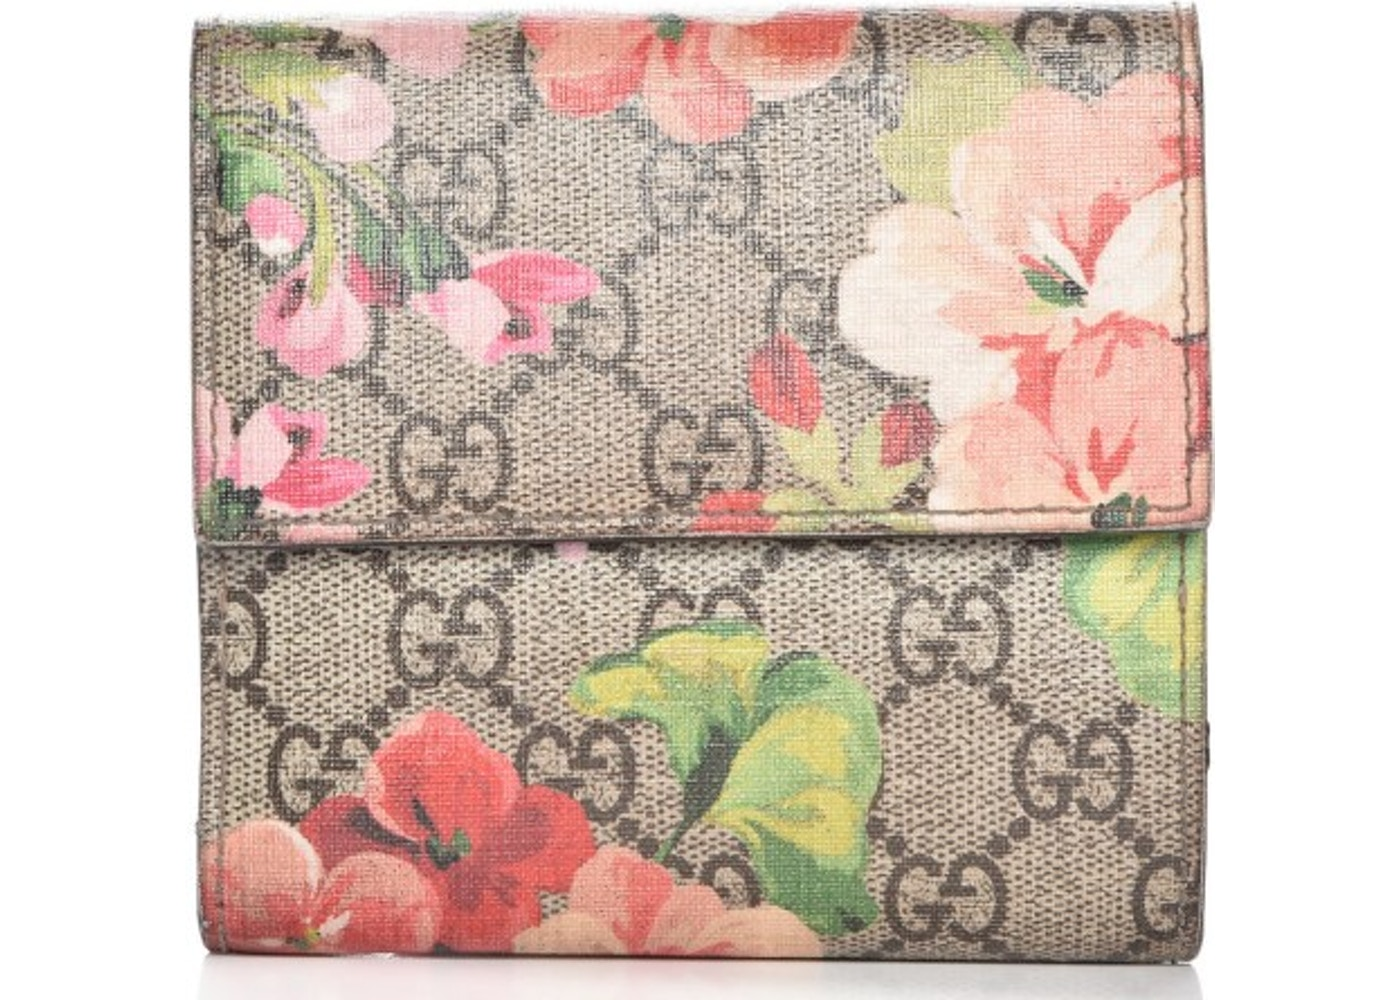 767cd67d0ea Gucci French Flap Wallet Blooms GG Pink Brown Beige Green. Blooms GG  Pink Brown Beige Green